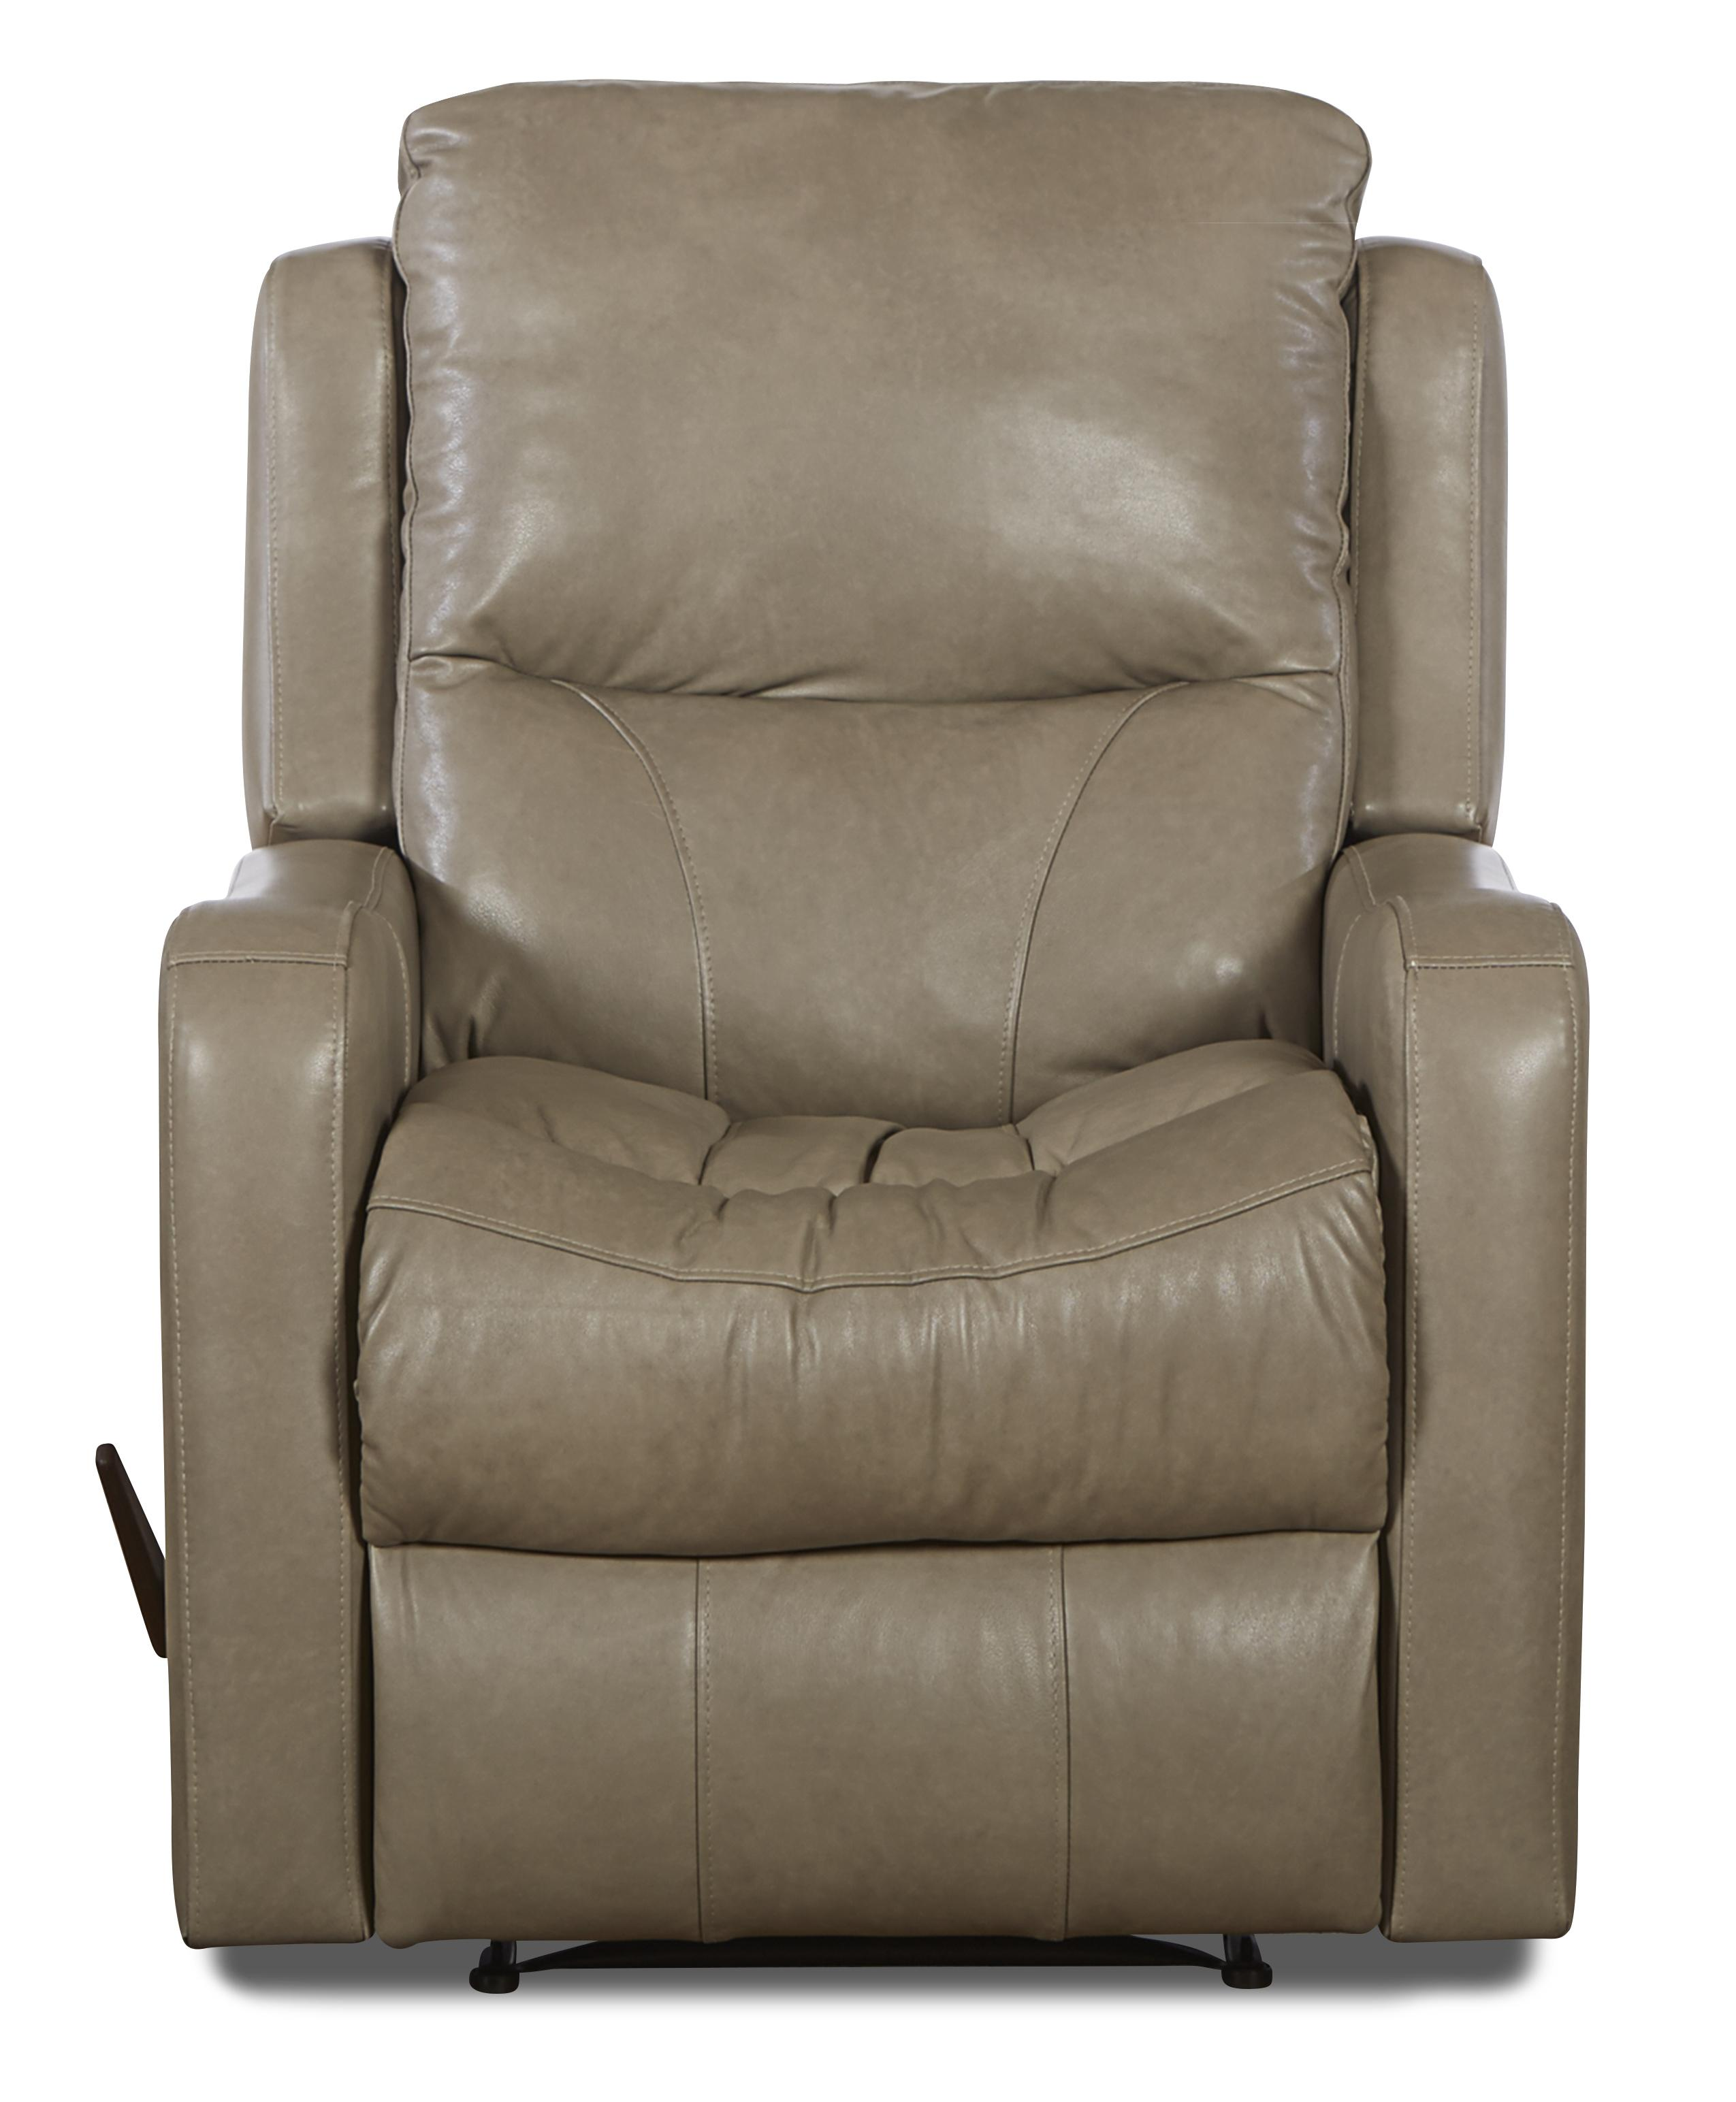 Klaussner Cruiser Transitional Power Reclining Chair - Item Number: LV82903 PWRC-SteamboatPutty